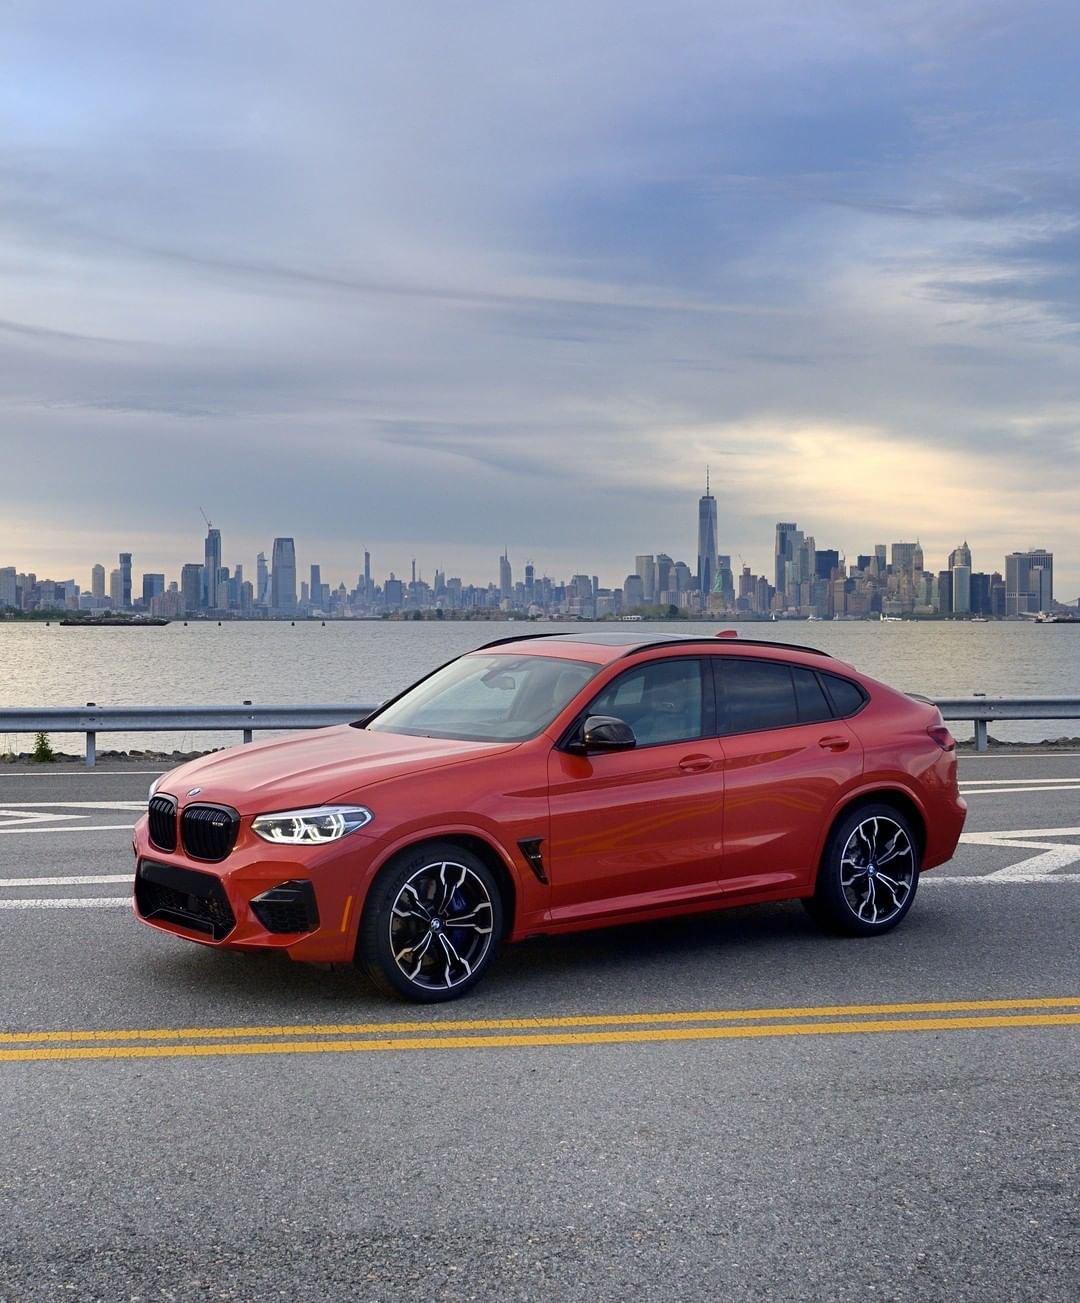 Bmw X4 M: When The Road Is Calling Your Name. The First-ever BMW X4